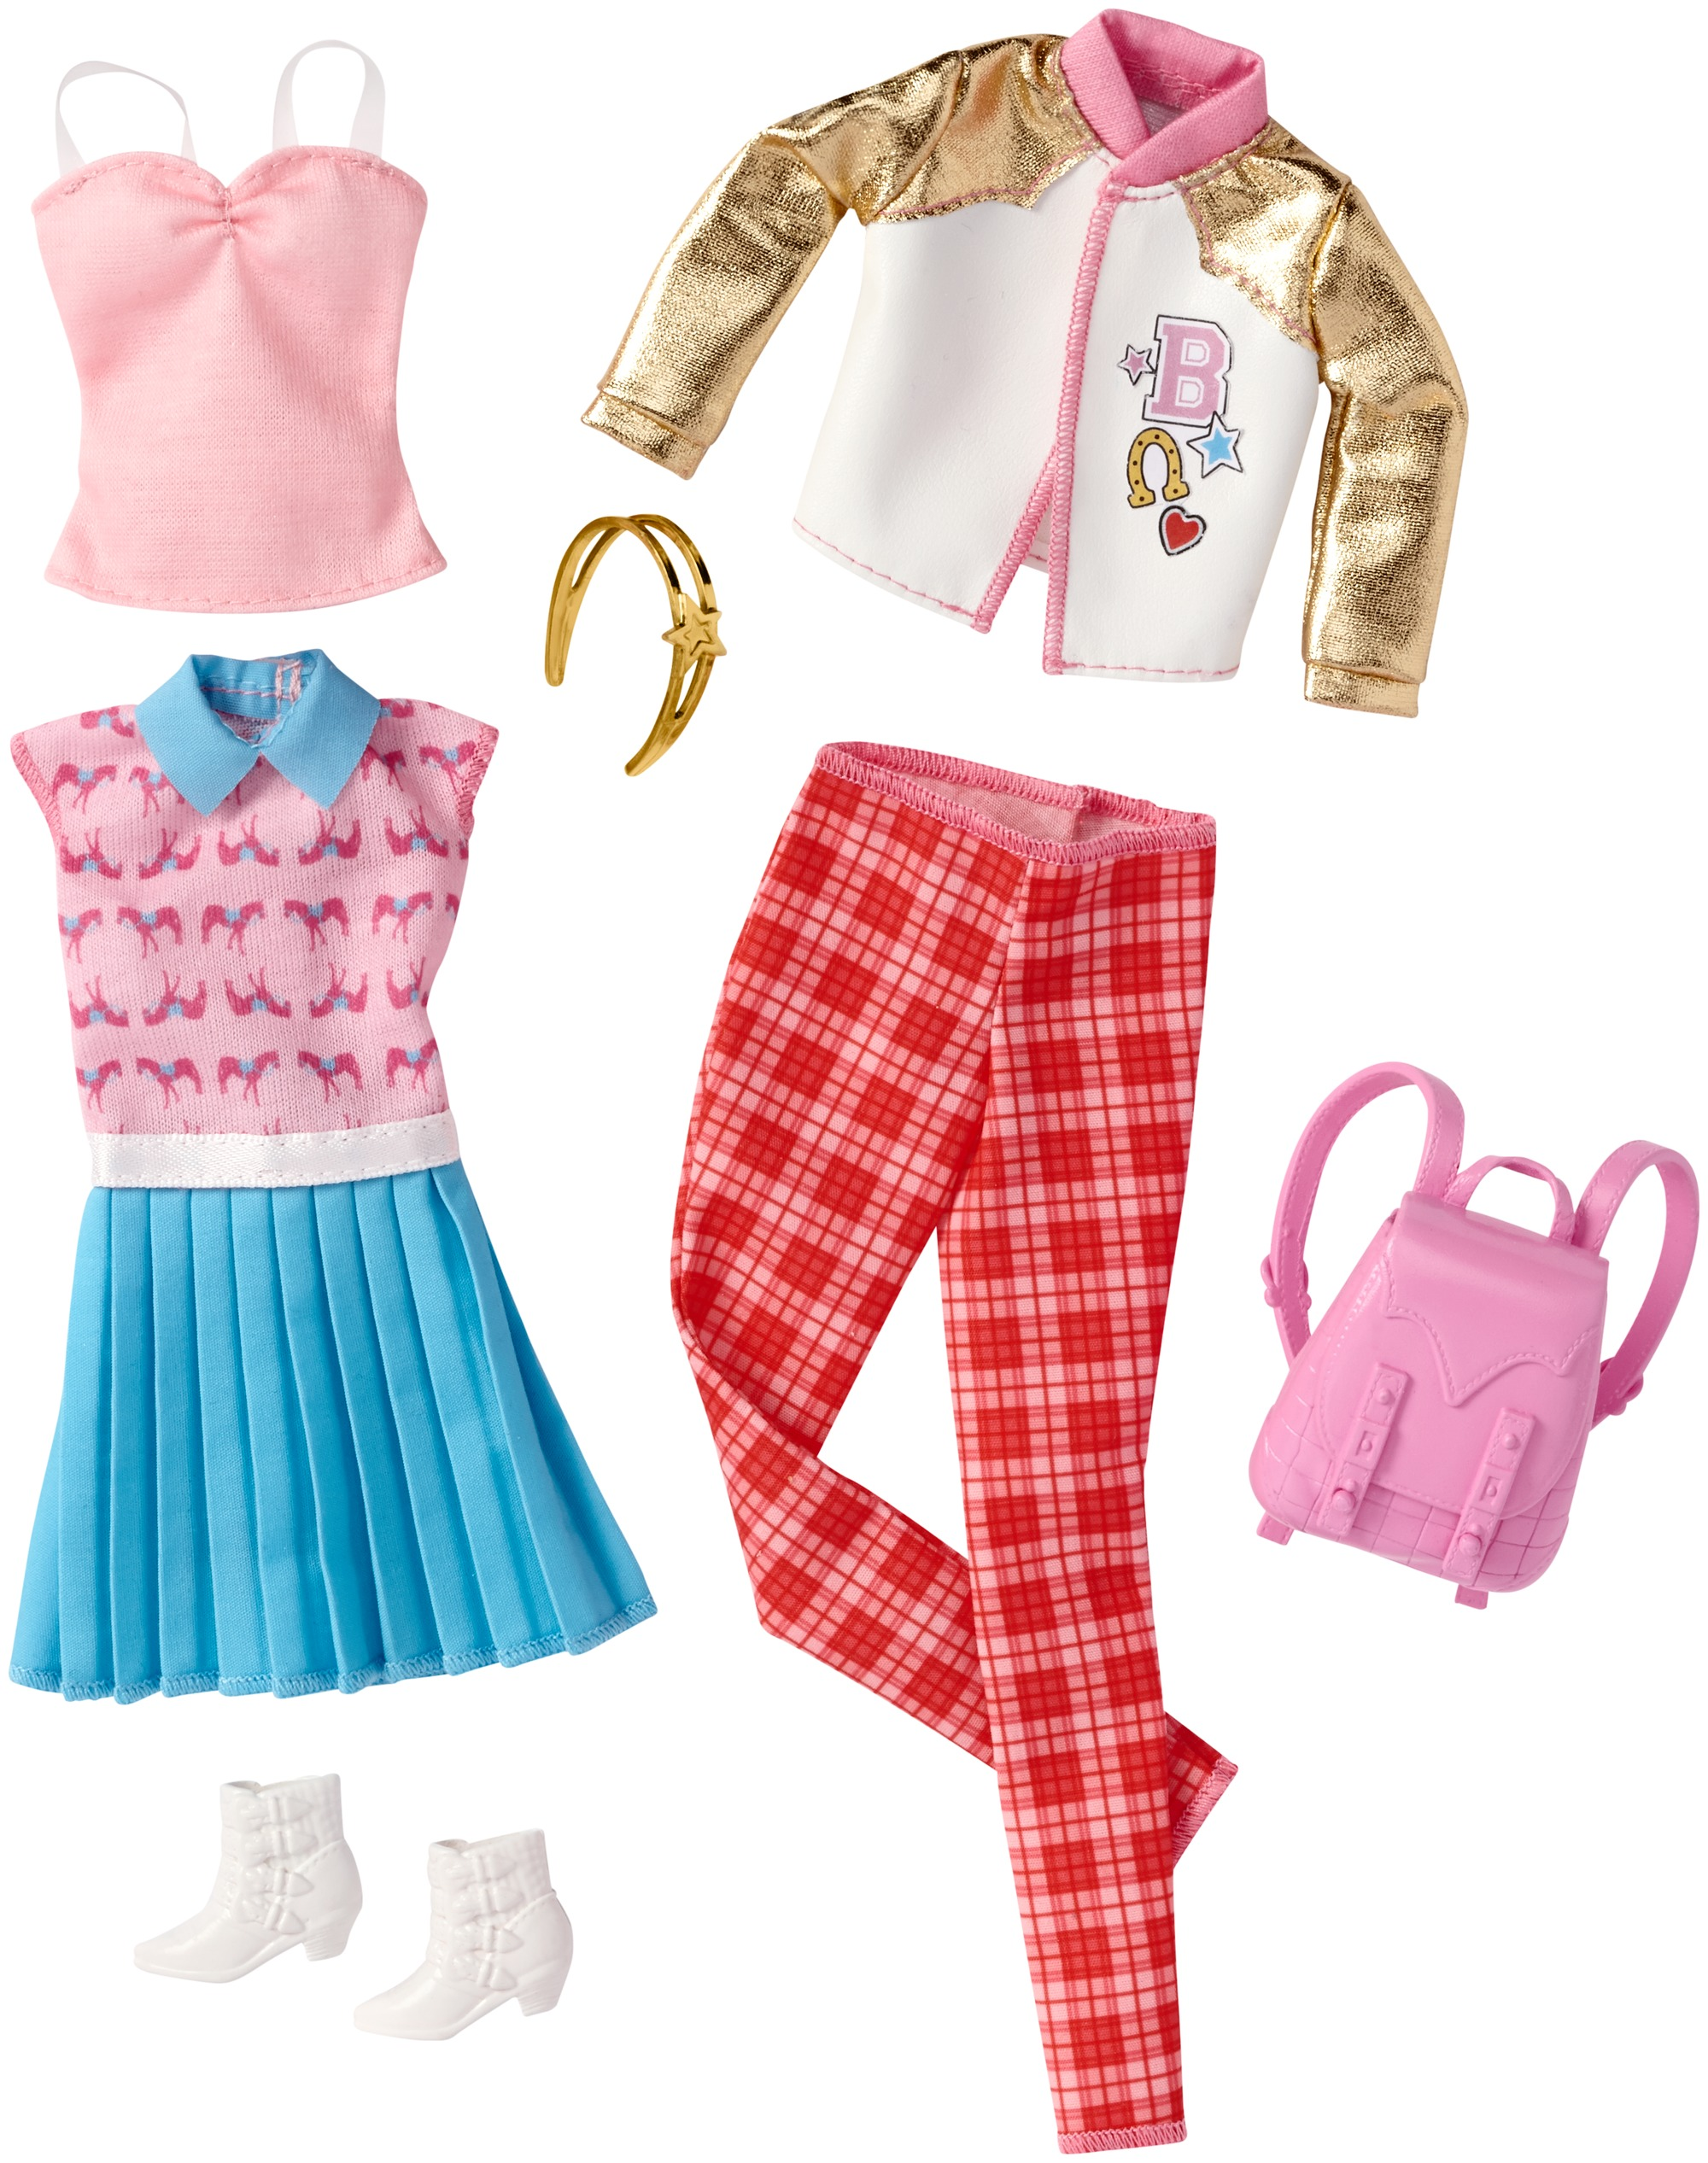 Clothes Accessories: Barbie Fashion Outfit 2-Pack #8